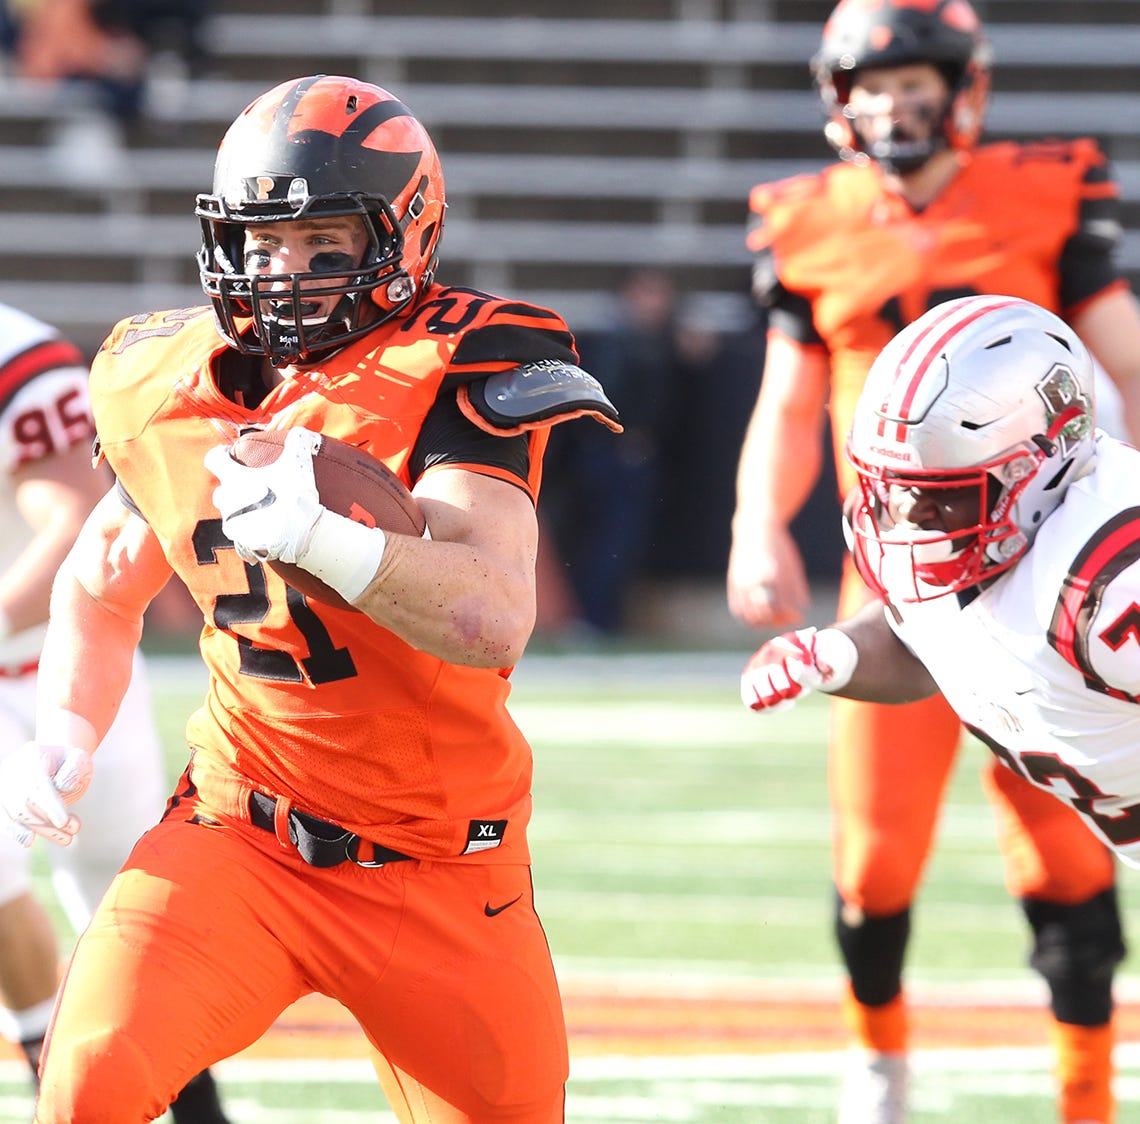 Princeton football is steamrolling opponents, and Jersey guys are playing key roles